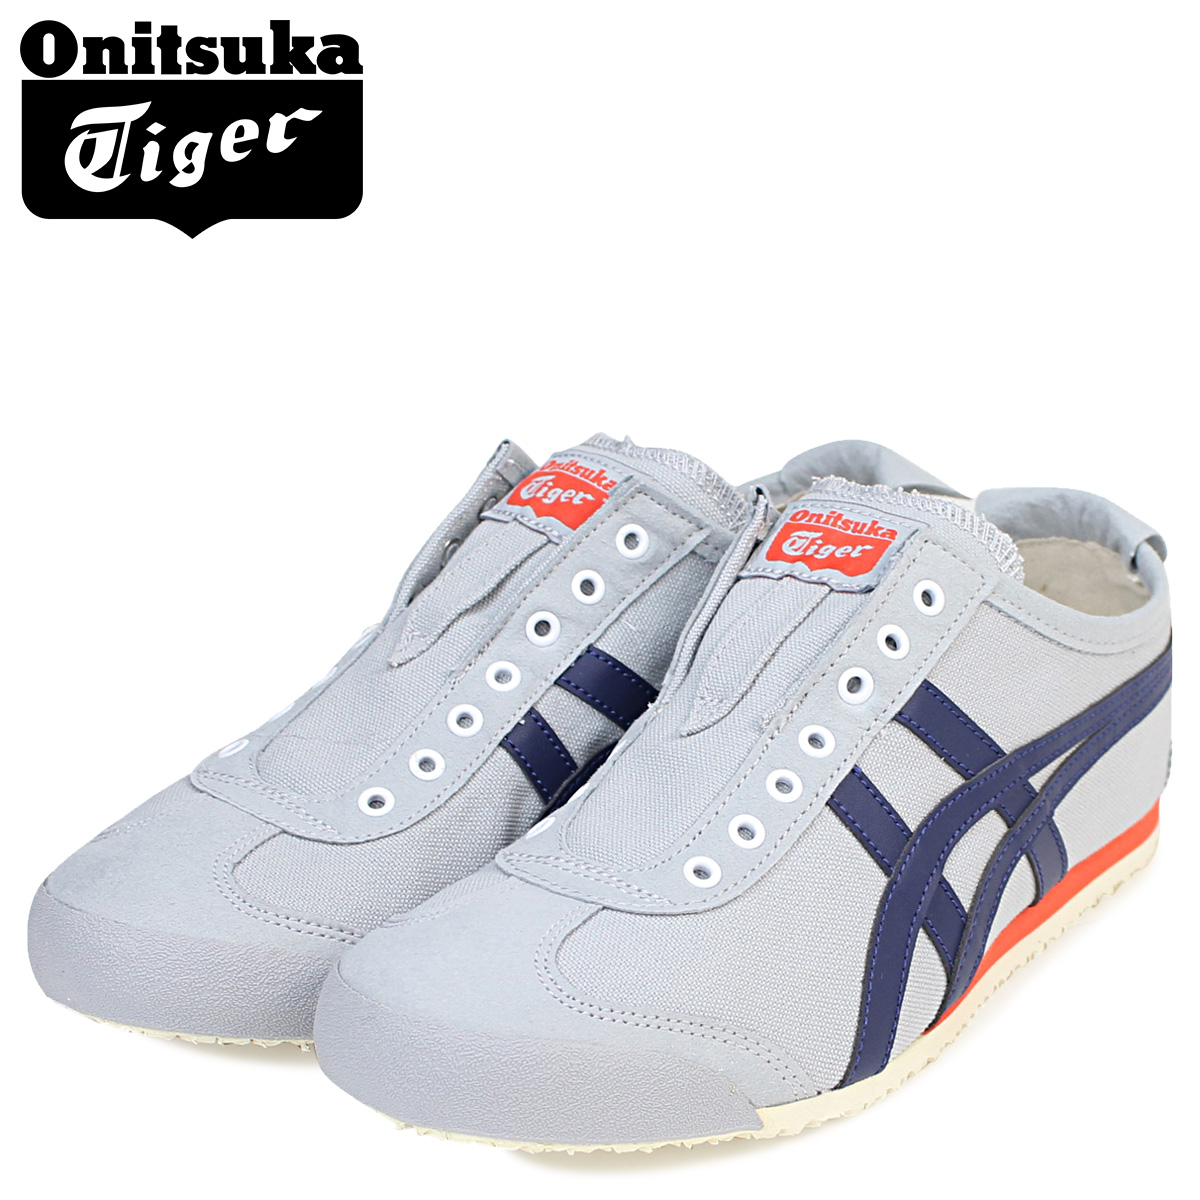 hot sale online 94ab6 46b5b Onitsuka Tiger asics Mexico 66 slip-ons Onitsuka Tiger men gap Dis sneakers  MEXICO 66 SLIP ON D3K0N 9649 shoes gray